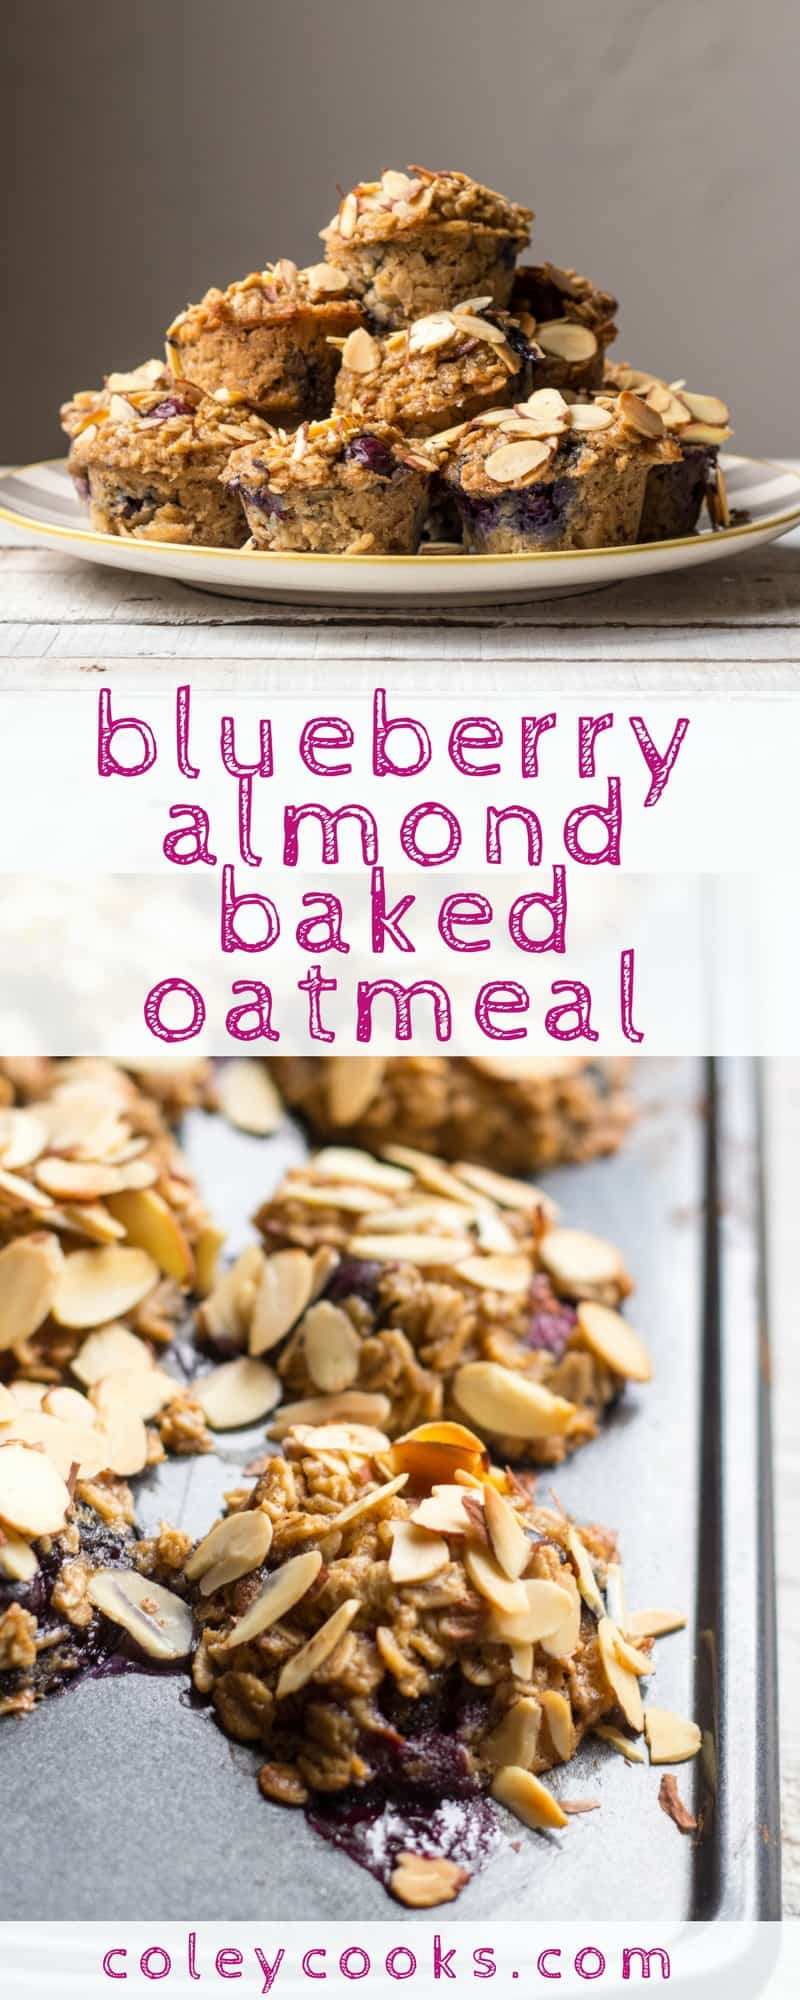 BLUEBERRY ALMOND BAKED OATMEAL | This baked oatmeal recipe is an easy and nutritious breakfast to take on the go! These little baked oatmeal bites are gluten free, dairy free, loaded with blueberries, and taste amazing! | ColeyCooks.com